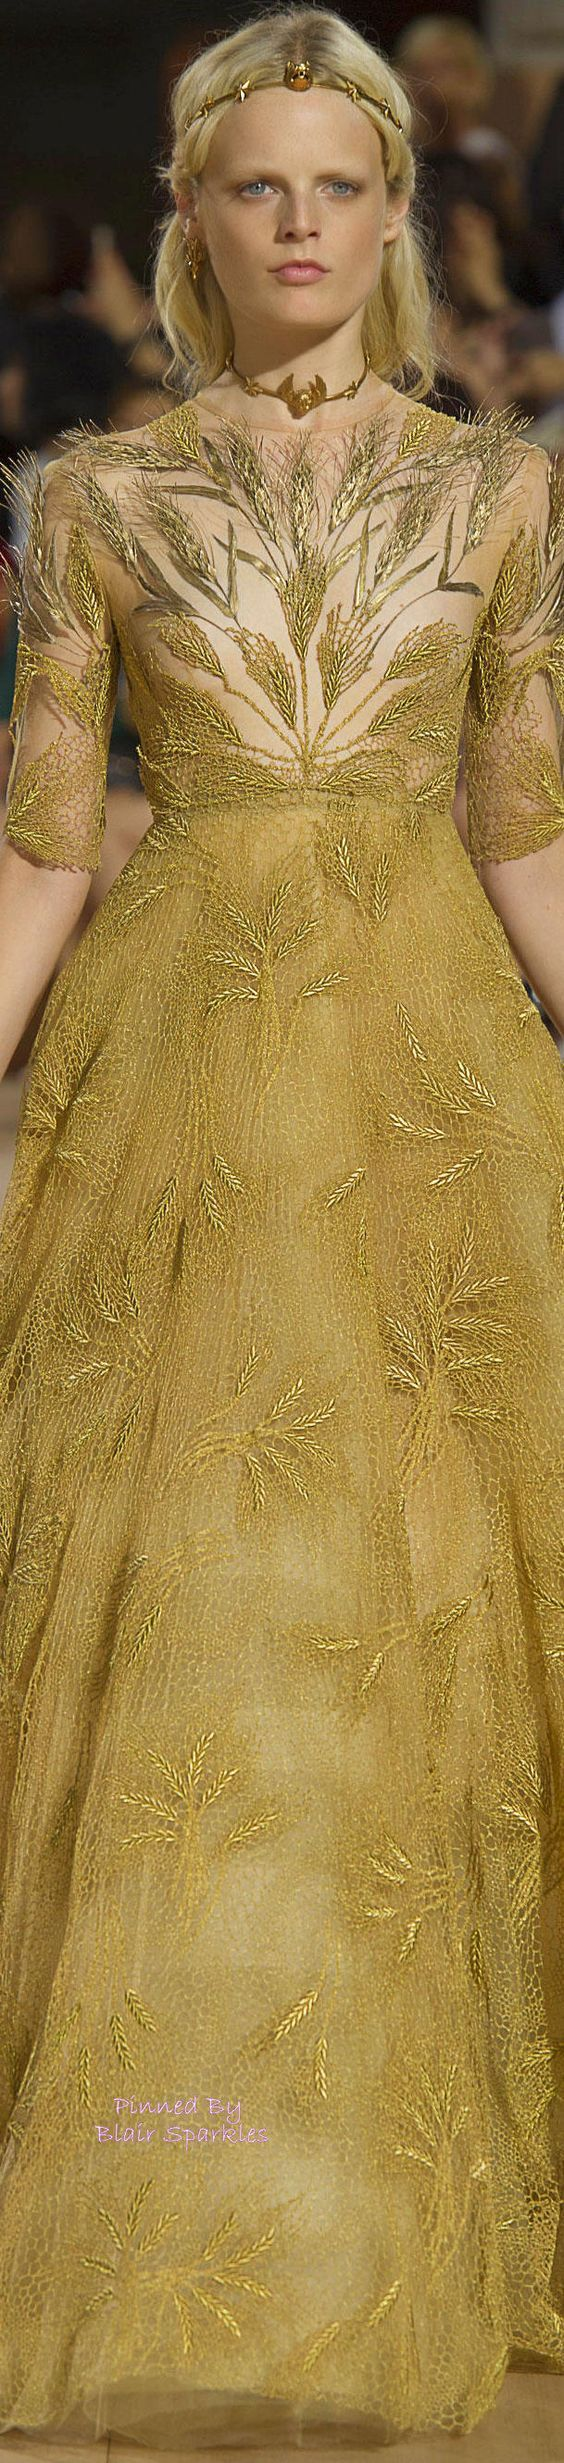 Inka lace dress yellow   best ACSS The Old Religion images on Pinterest  Character